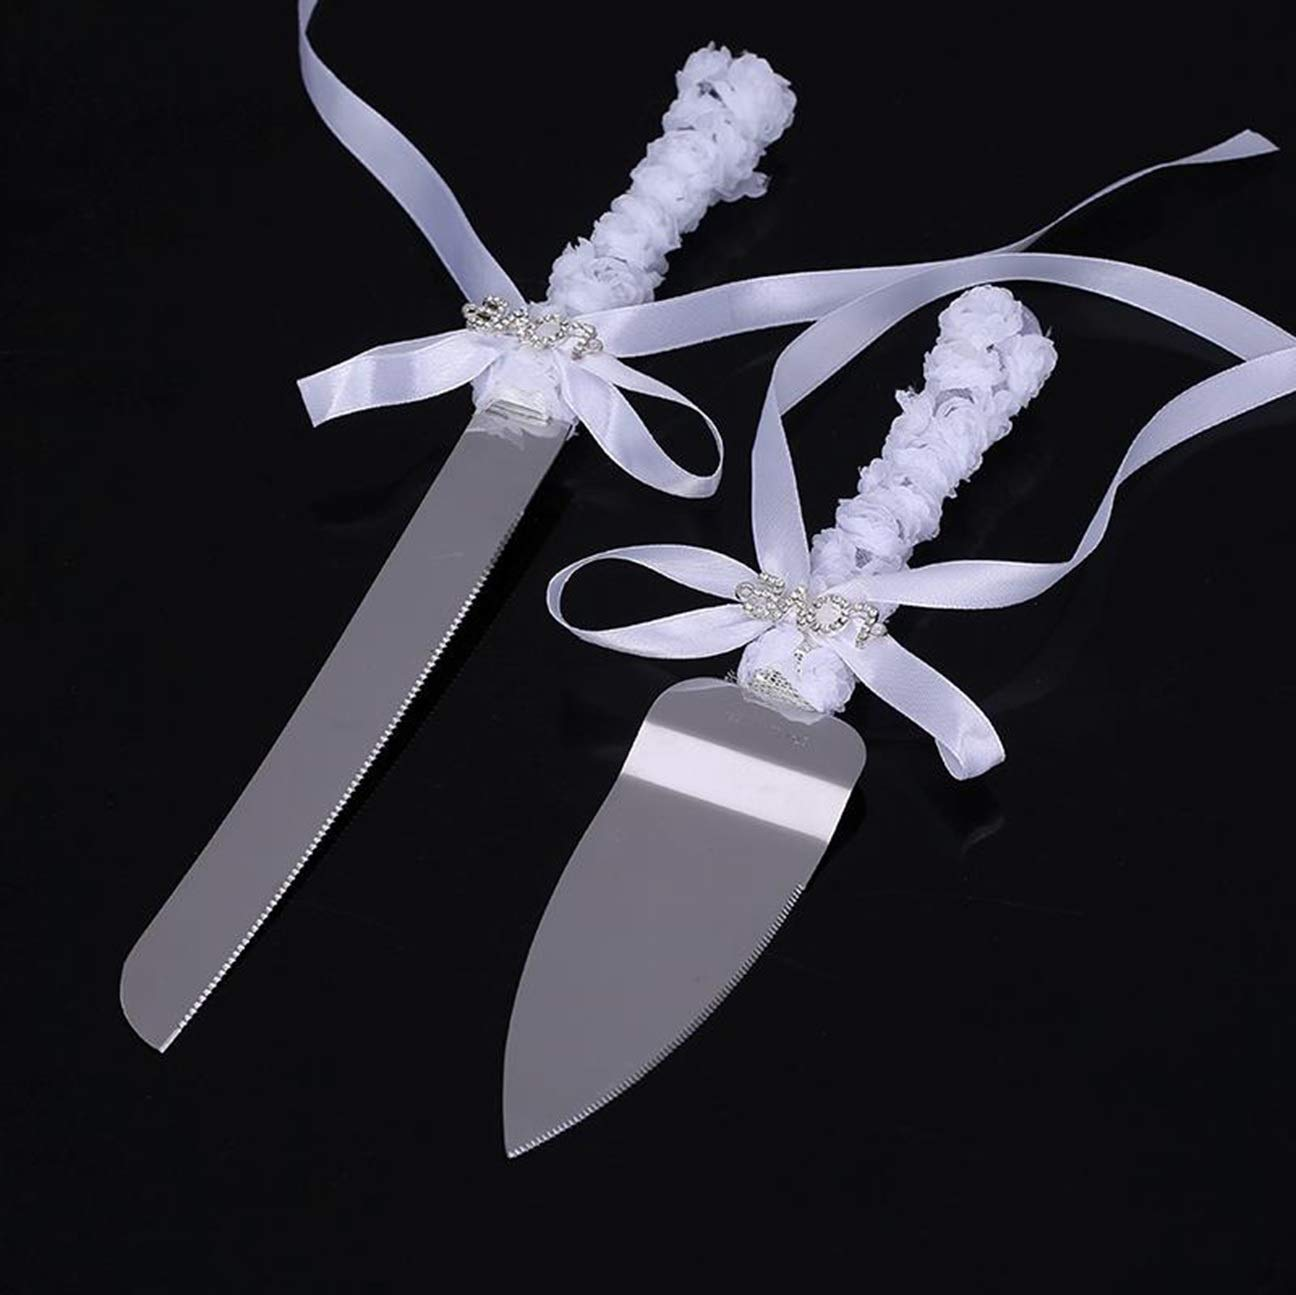 2 Pcs Wedding Cake Knife Server Set Stainless Steel Anniversary Parties Tableware UOB